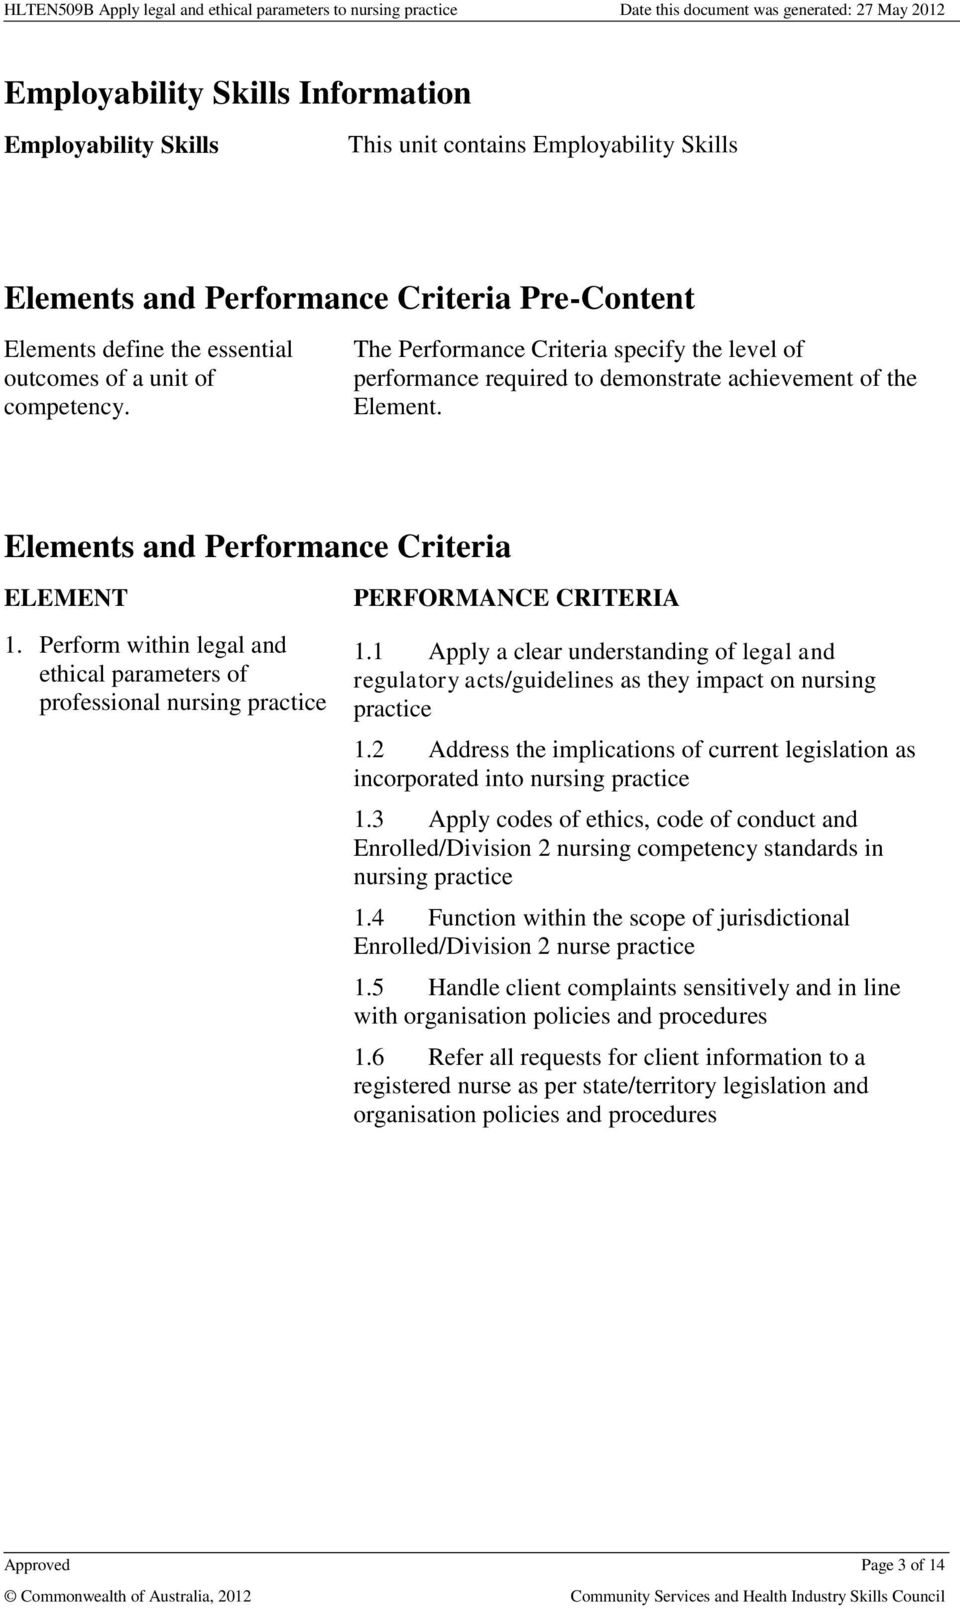 Perform within legal and ethical parameters of professional nursing practice PERFORMANCE CRITERIA 1.